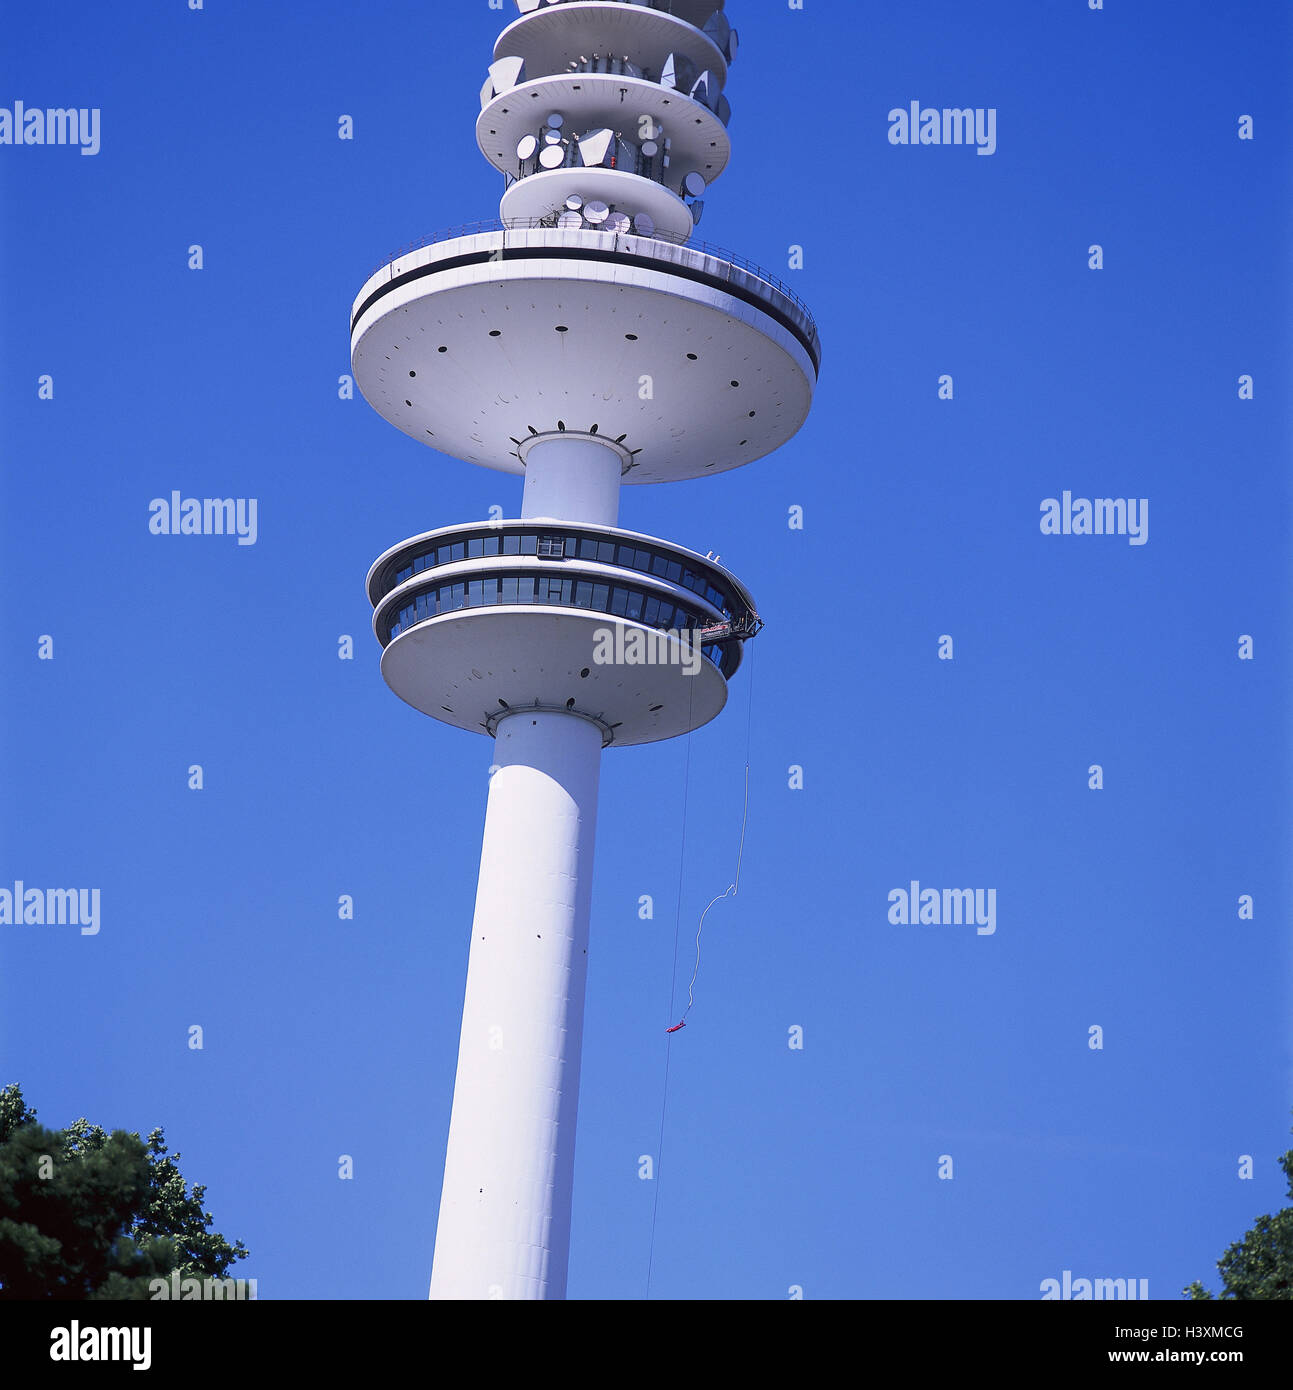 Germany, Hamburg, television tower, detail, Bungeejumping, Europe, town, Bungee, TV tower, jump, crack, fall, saved, Stock Photo